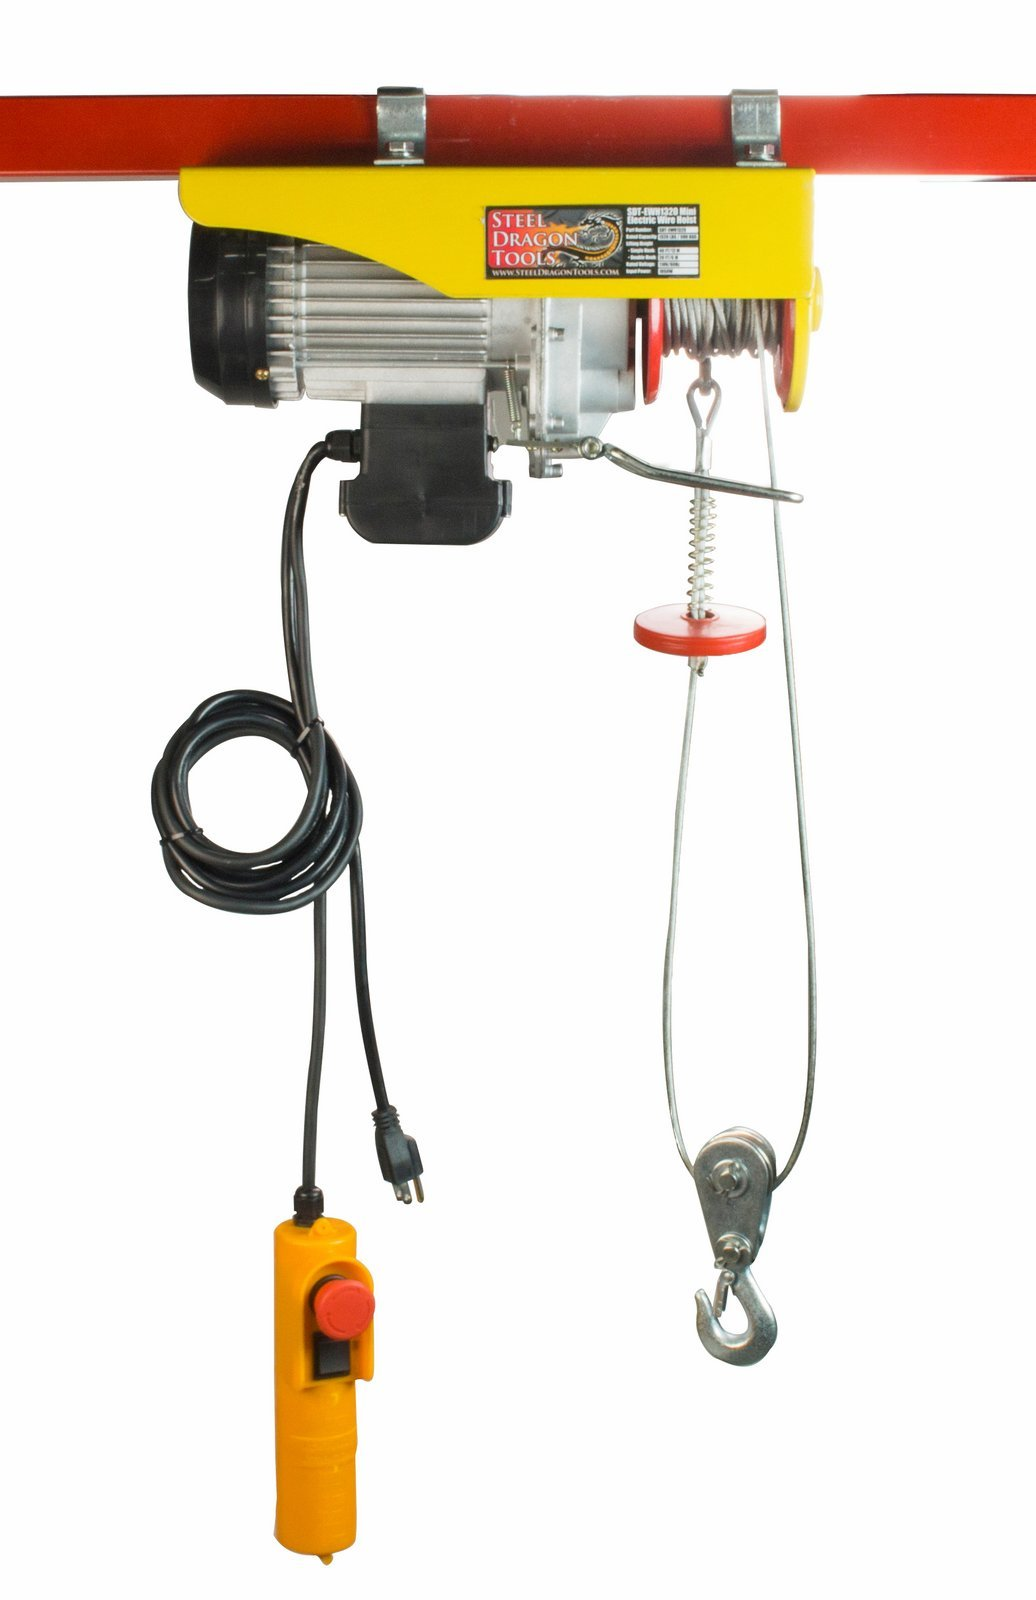 Steel Dragon Tools 1320 LBS Mini Electric Wire Cable Hoist Overhead Crane Lift with Remote Control